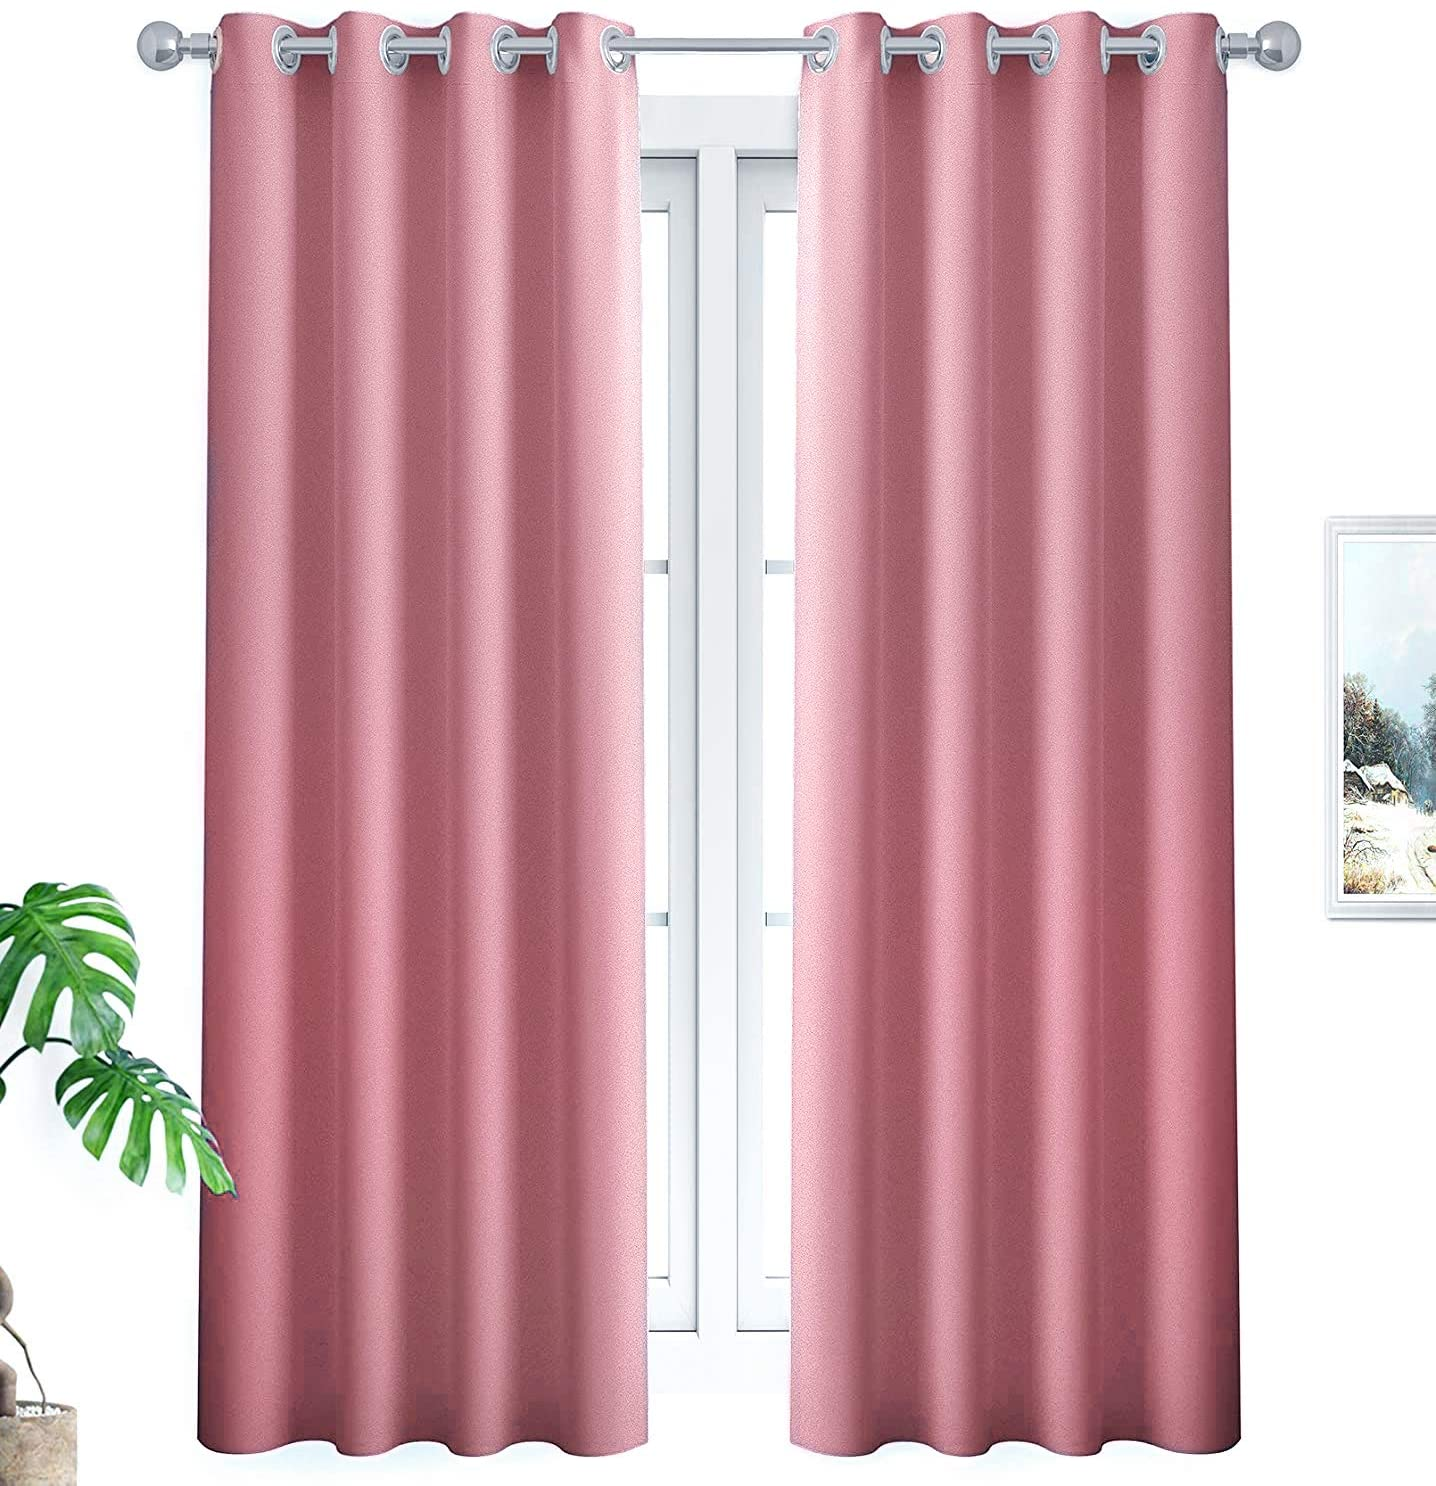 YUDSUD Blackout Curtains Panels for Bedroom Room Darkening Curtain Panels for Living Room Thermal Insulated Draperies/Drapes for Window with Grommets Set of 2 Panels (34